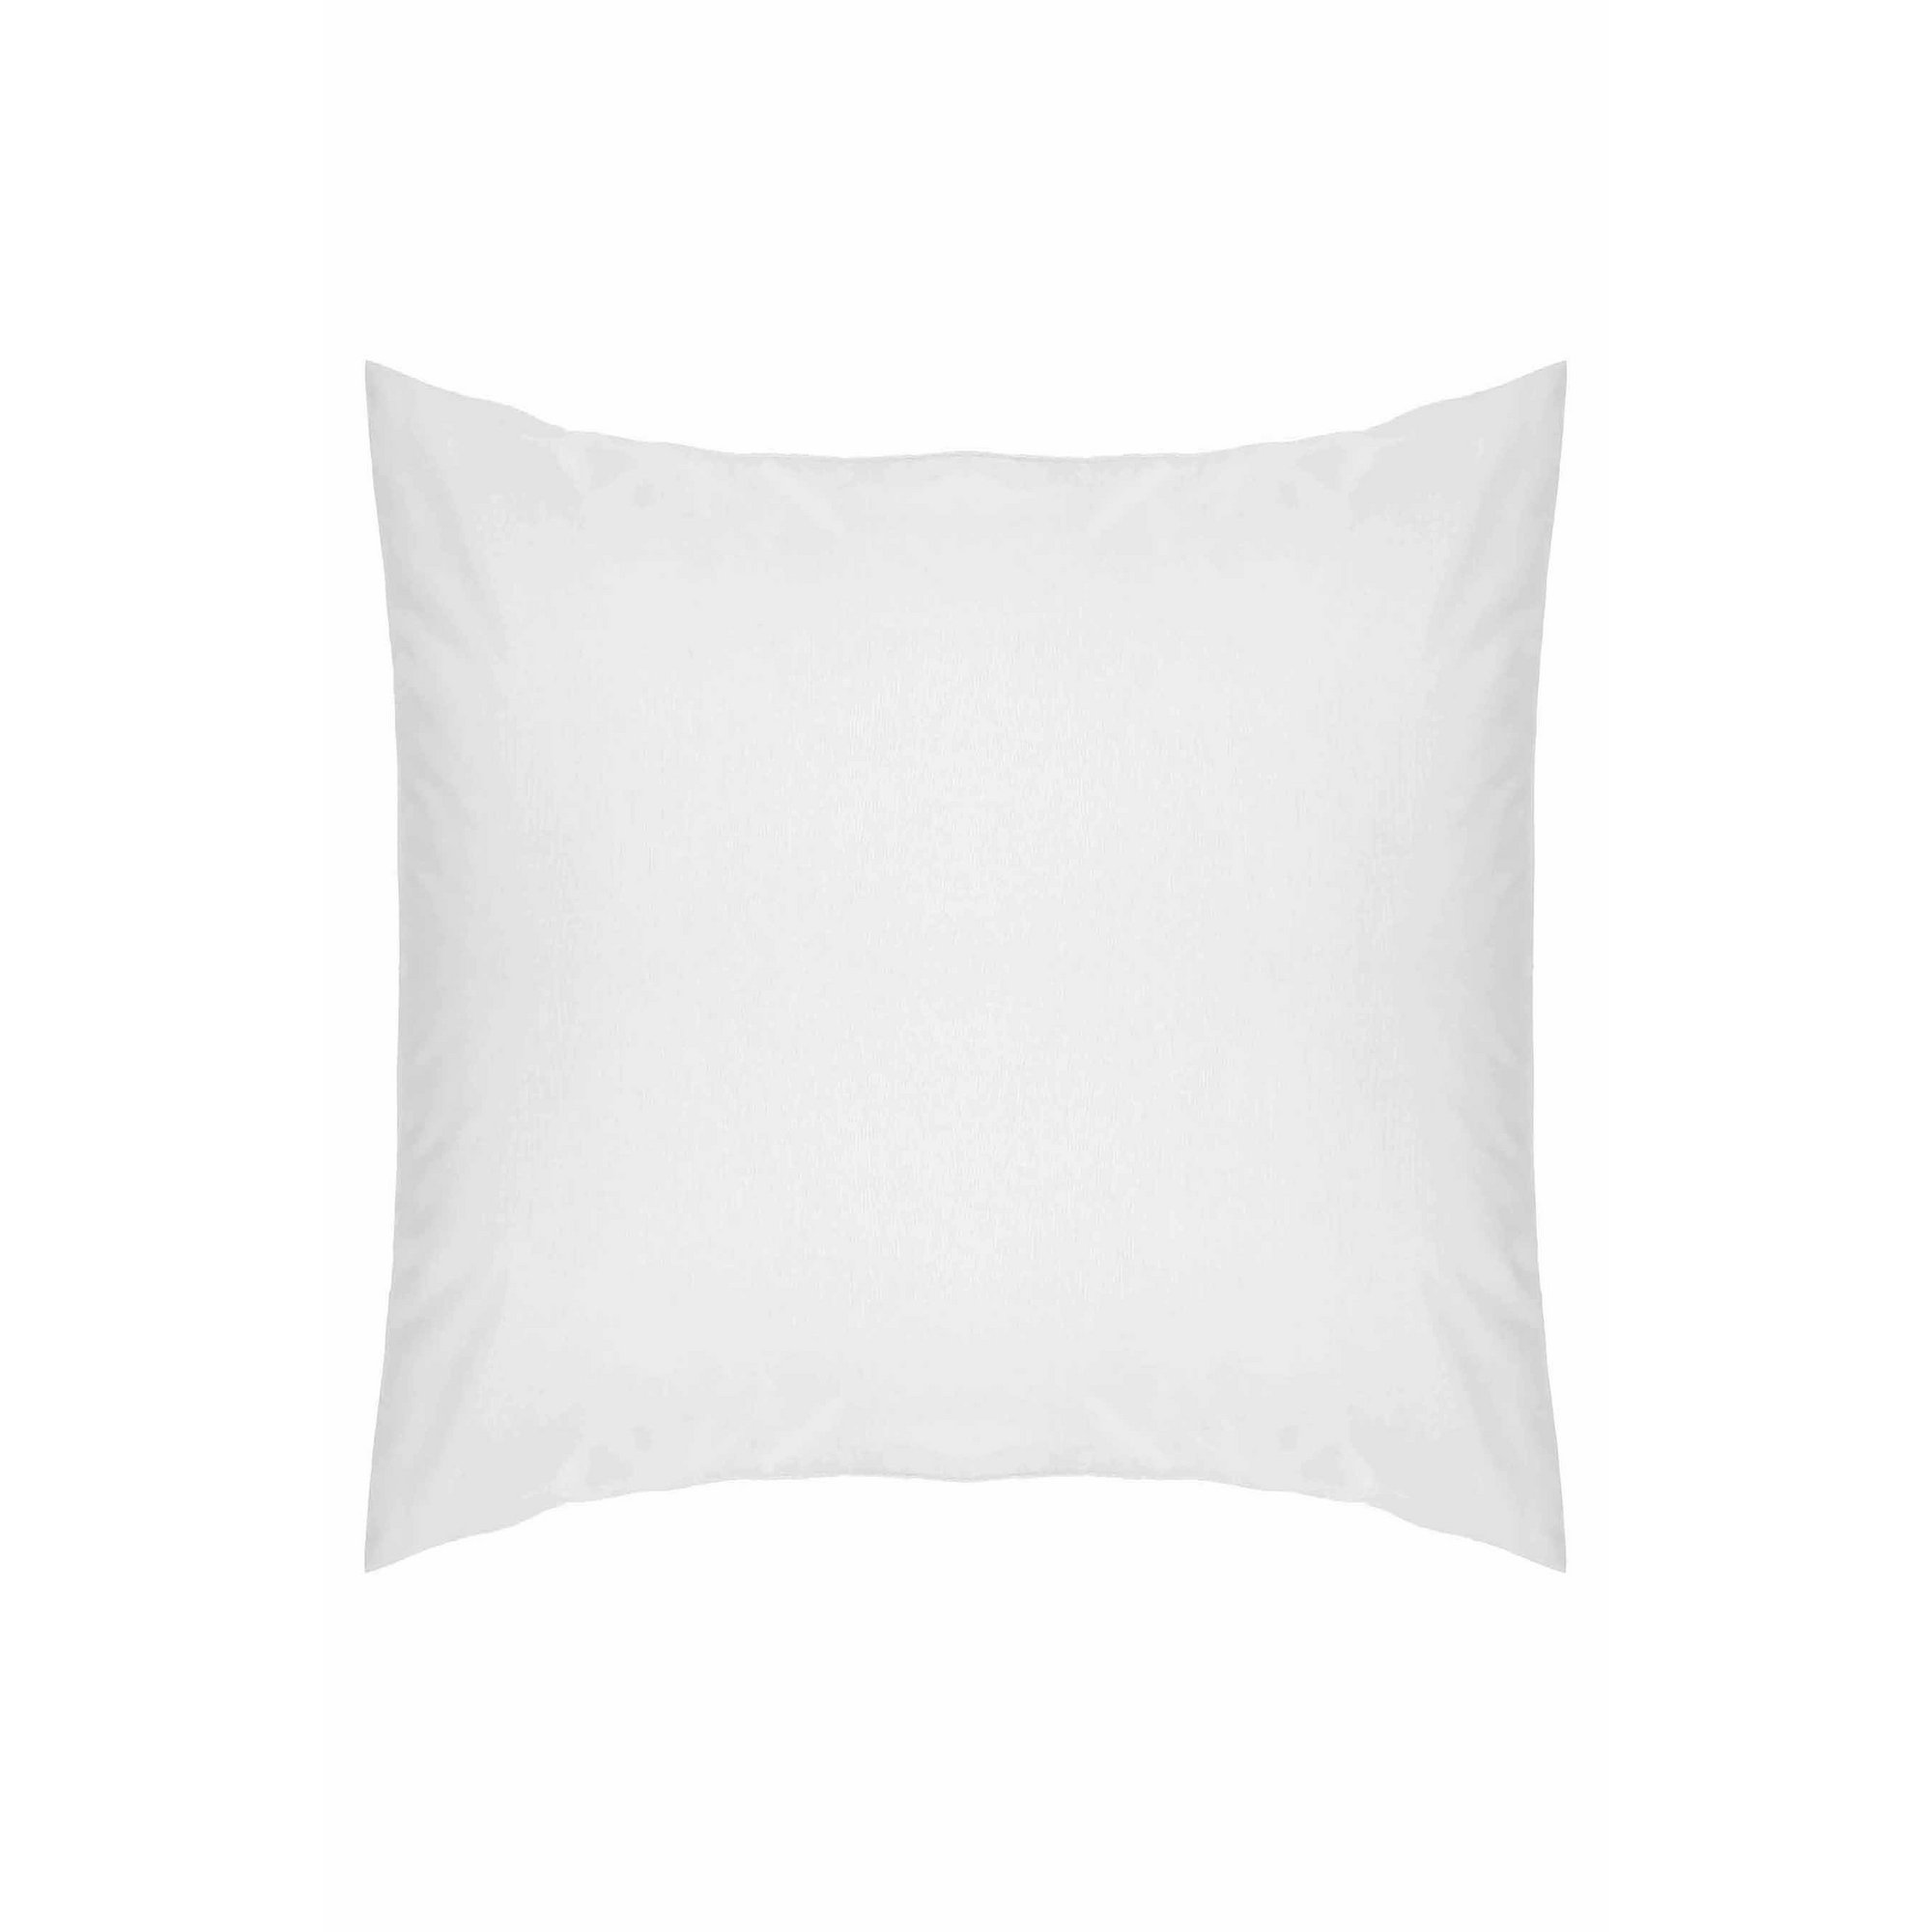 Image of 200 Count Percale Continental Pillowcases